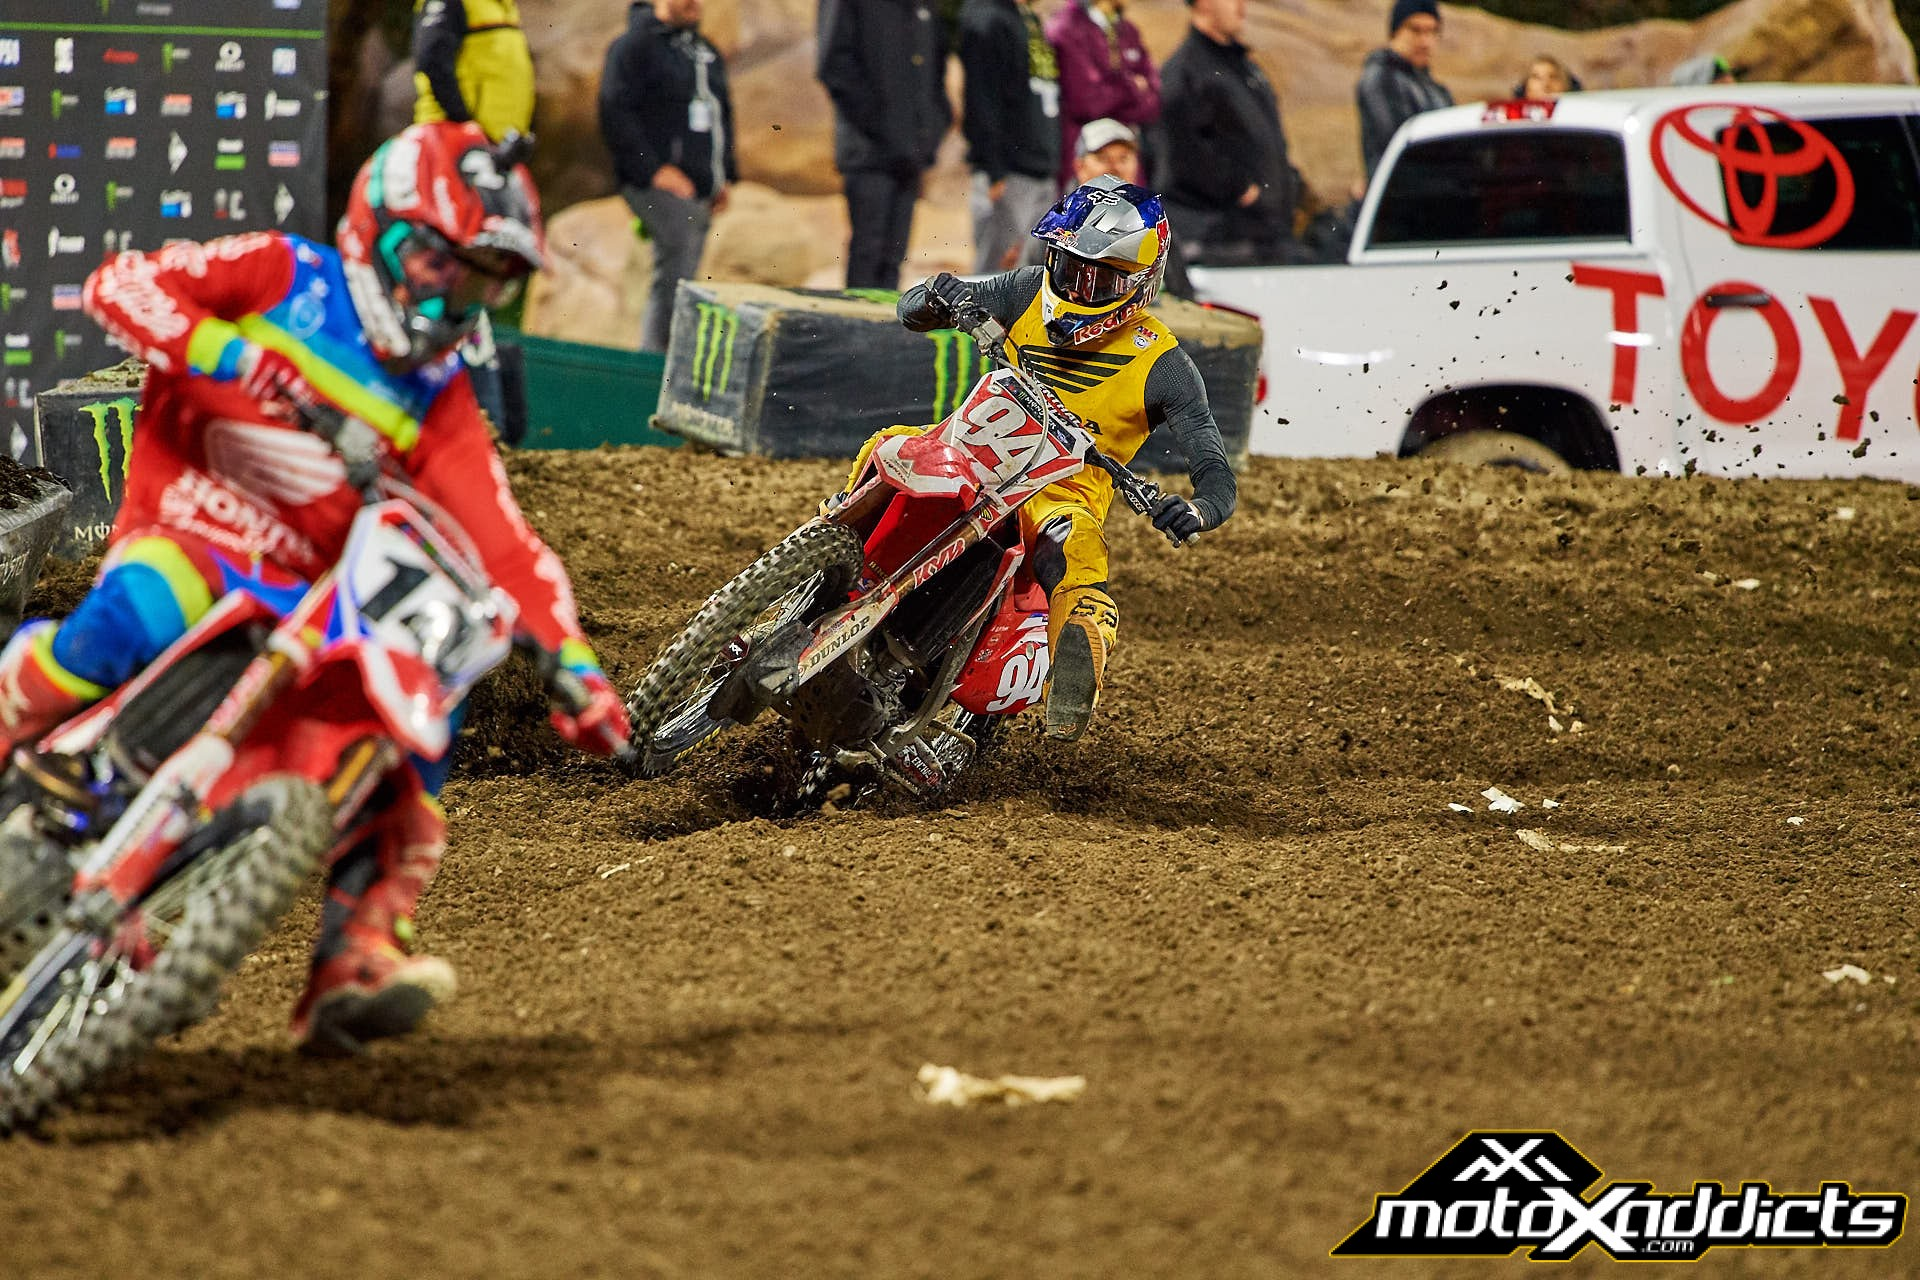 Ken Roczen (94) was shadowing Cole Seely when he crashed out of the series.